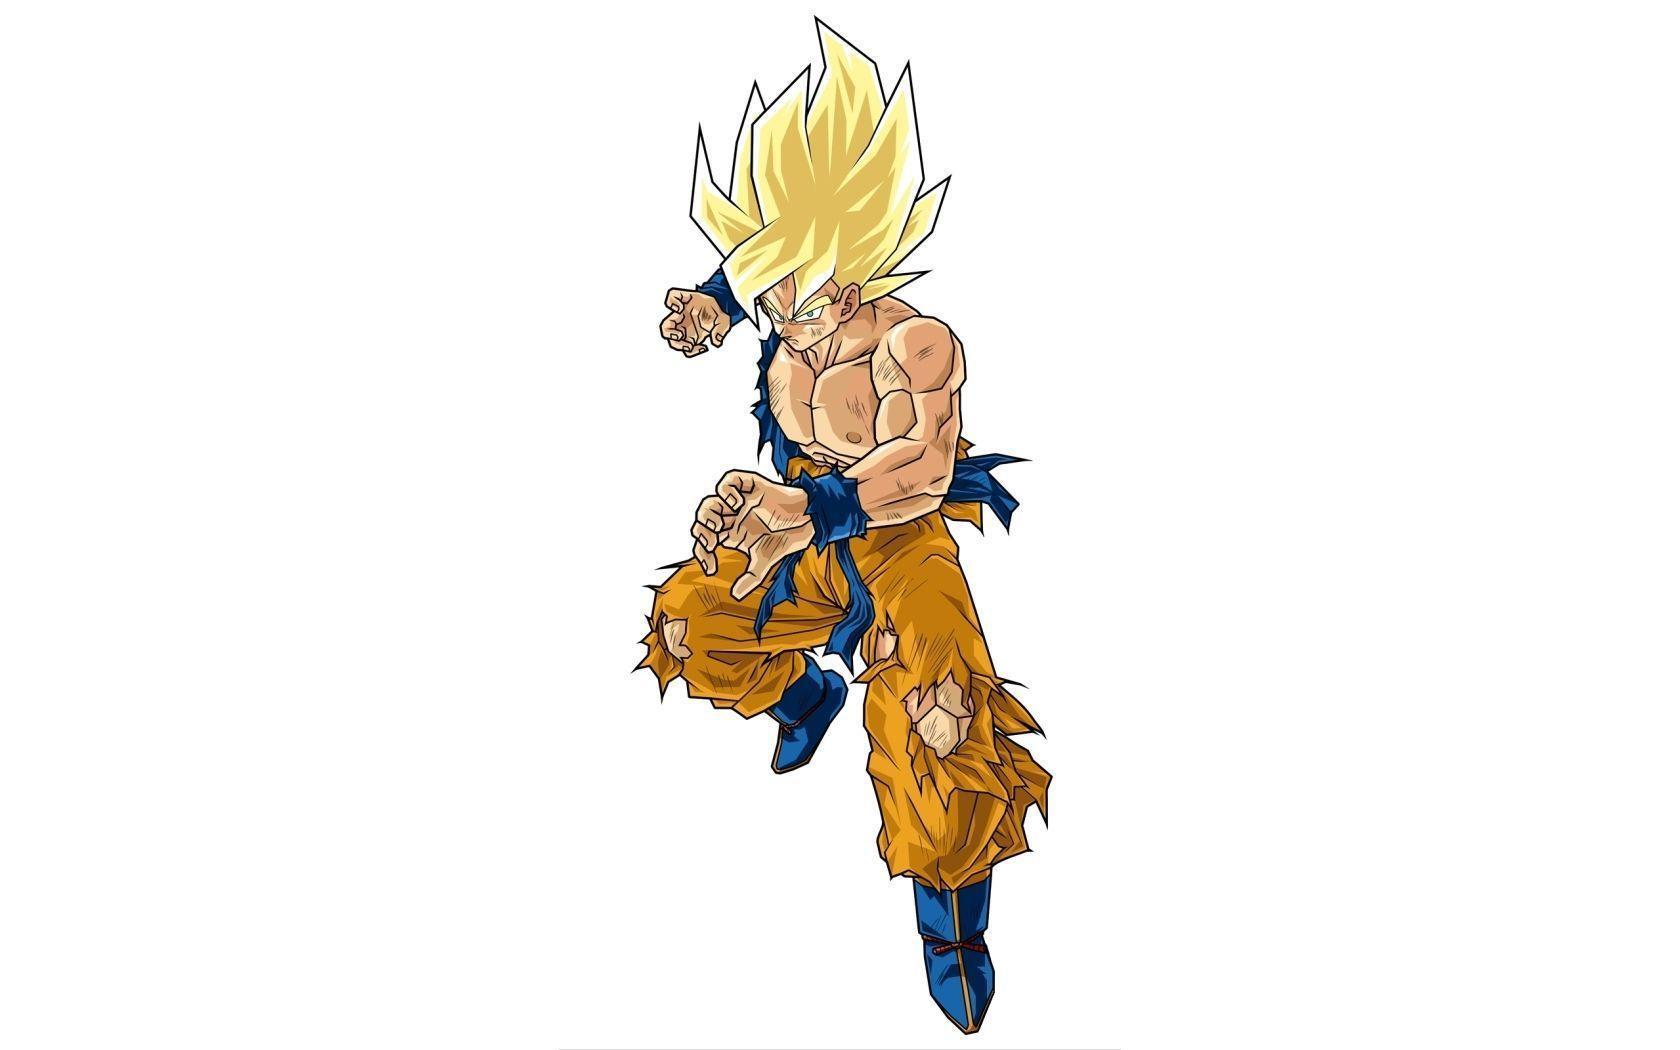 DBZ Warriors - Widescreen Dragon ball Z Wallpapers of Goku, Vegeta ...